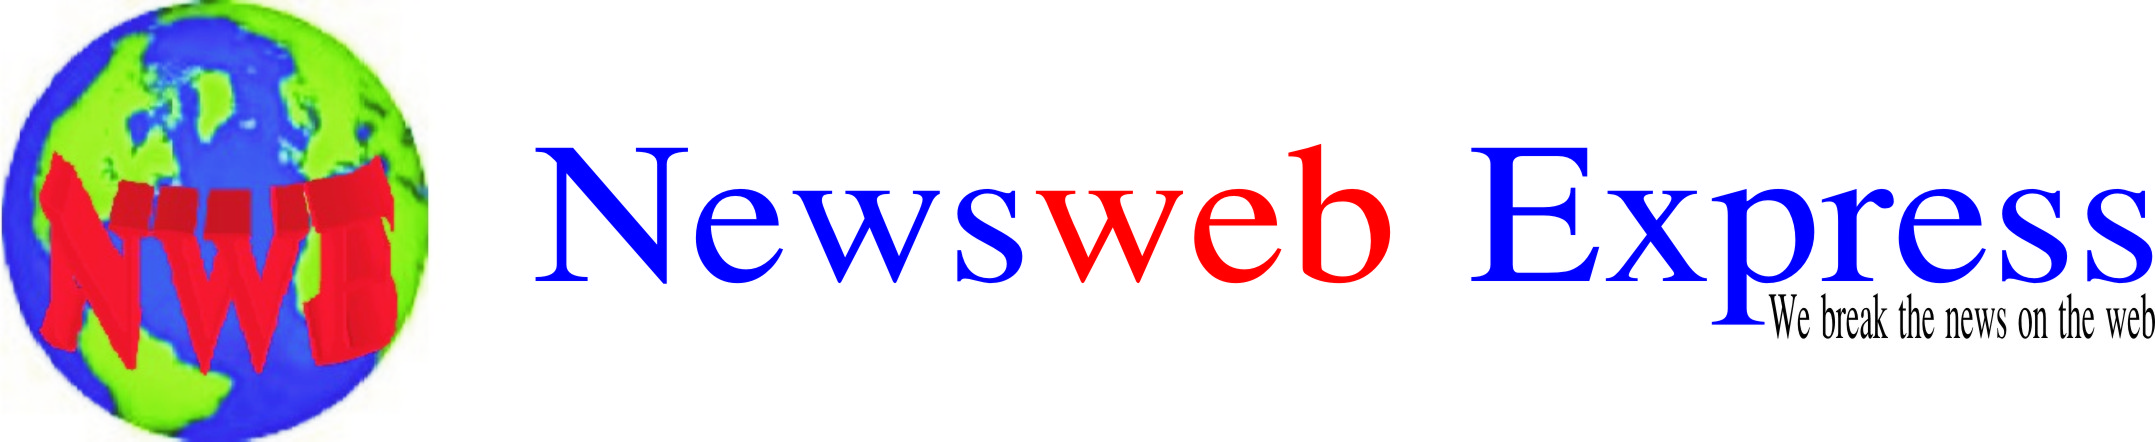 Newsweb Express